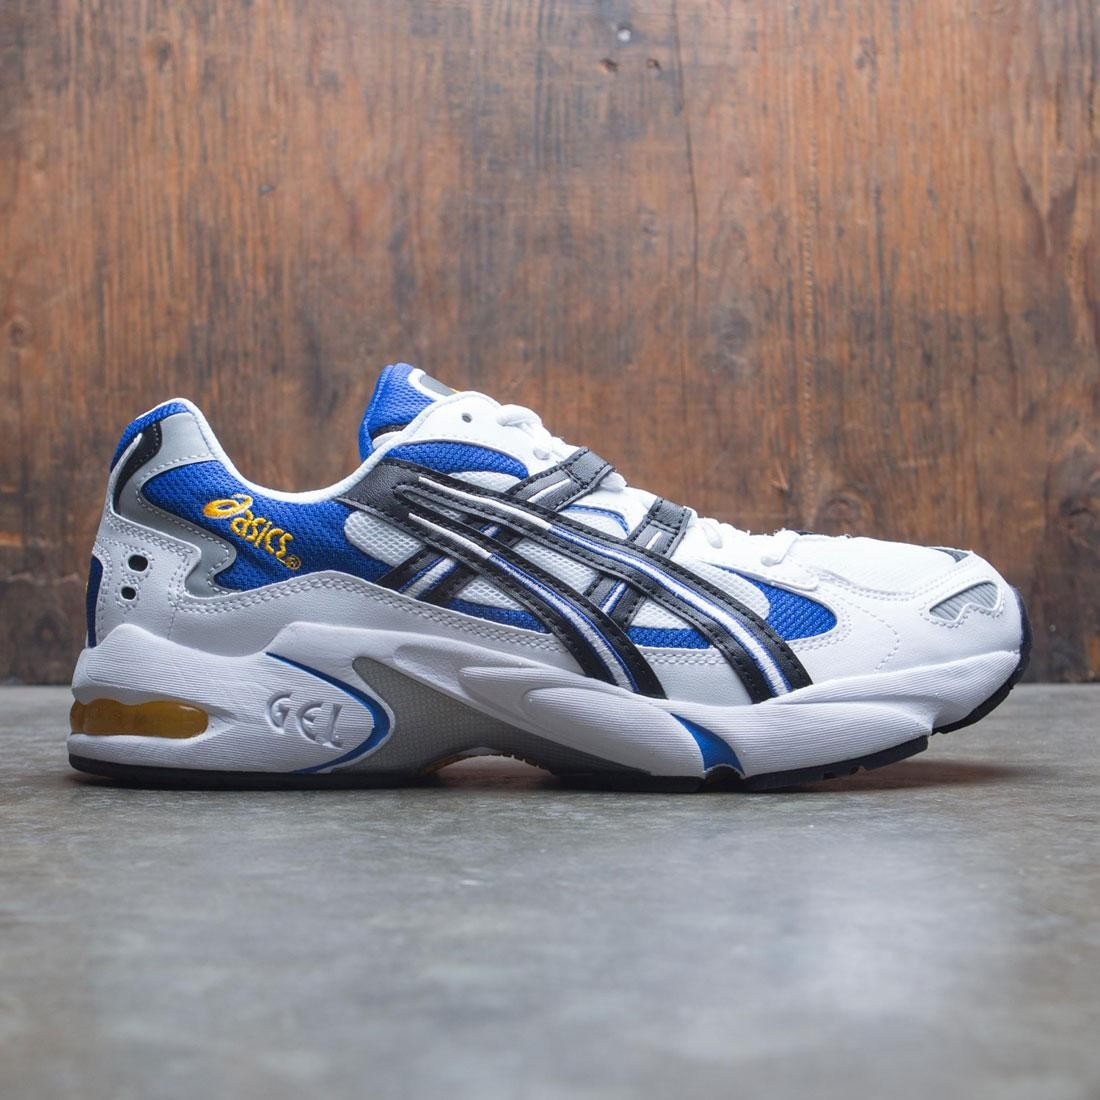 base grua Tamano relativo  Asics Tiger Men Gel Kayano 5 OG white black